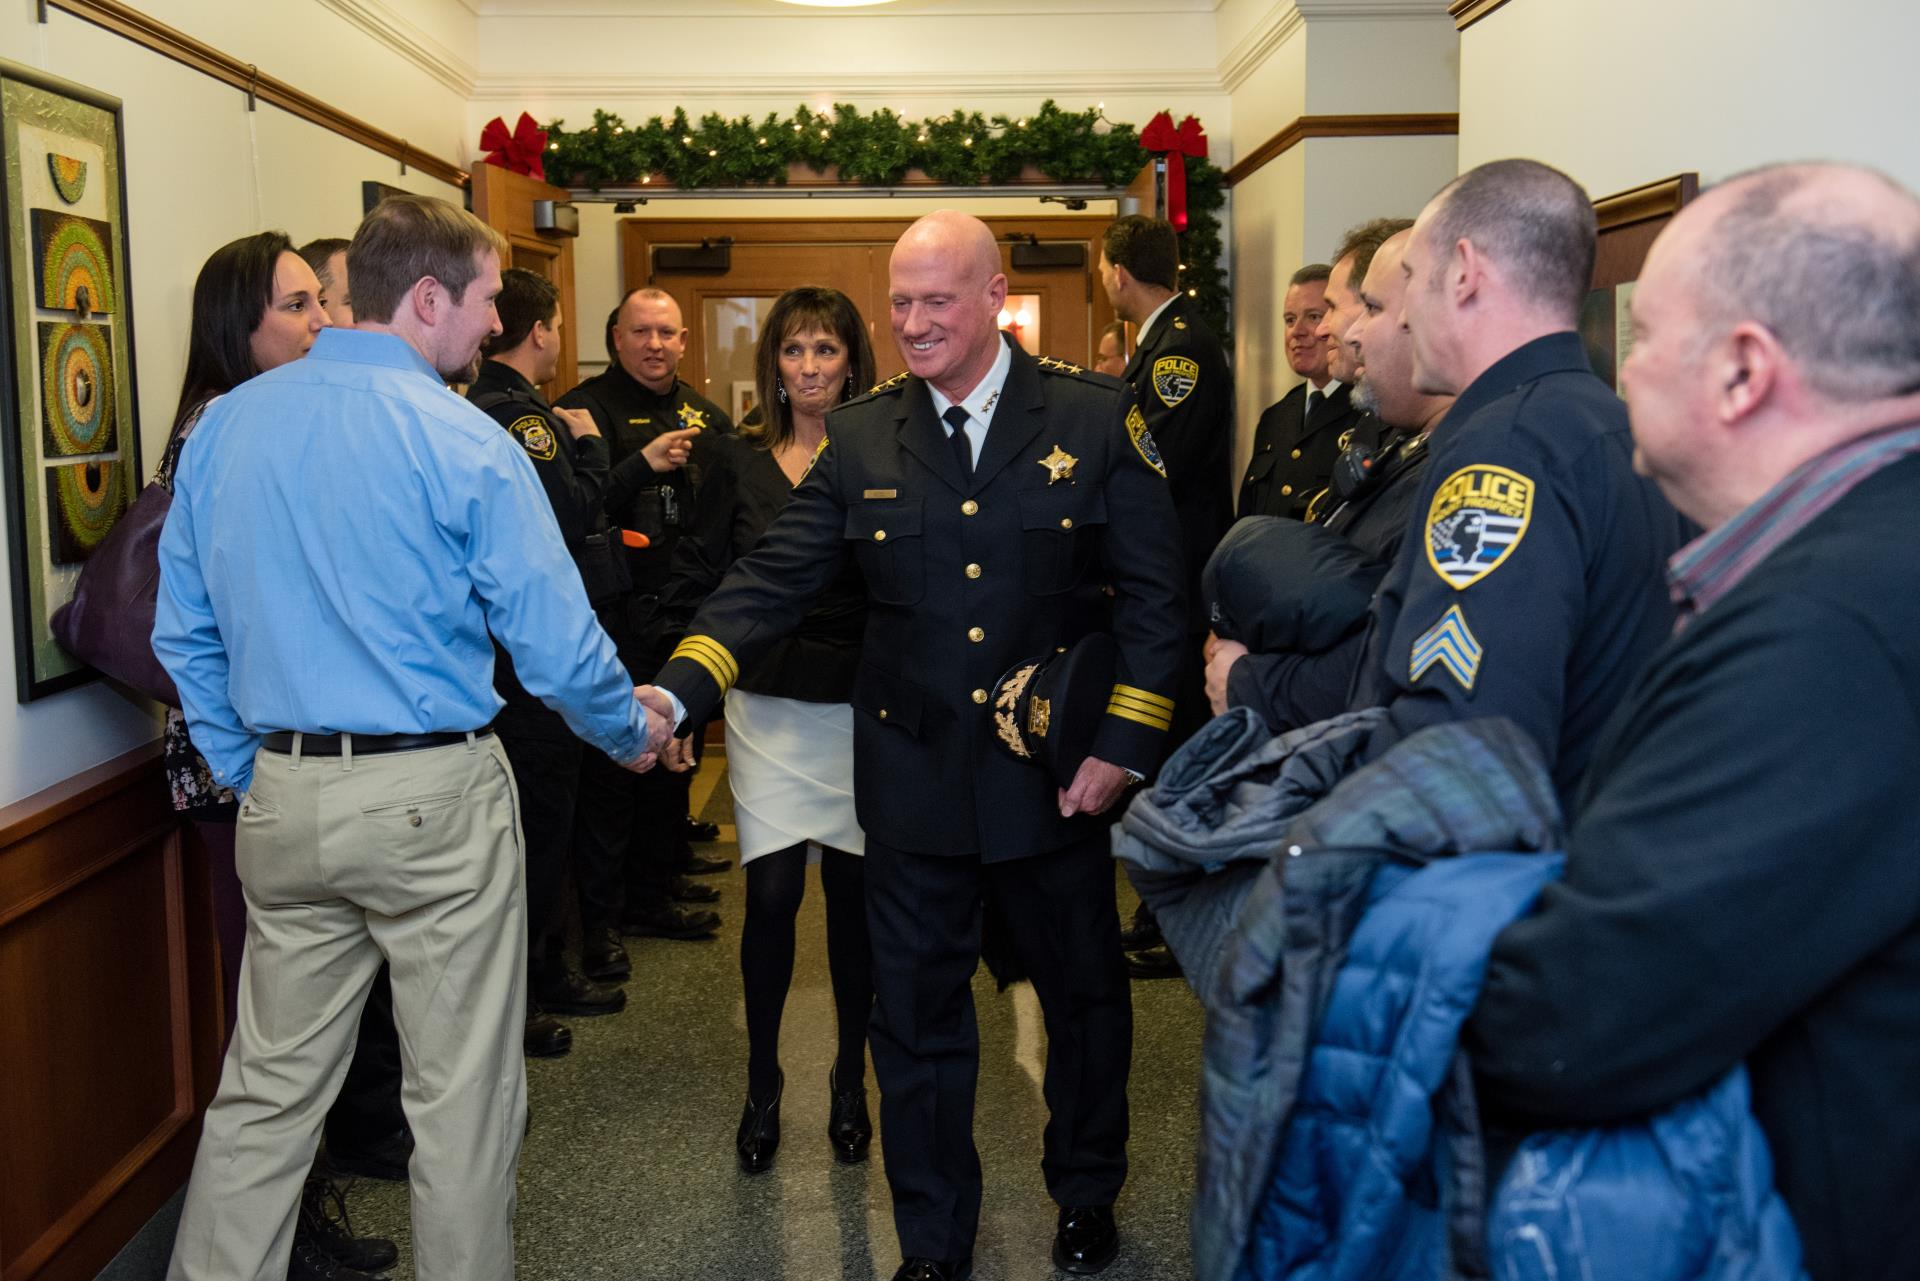 Chief Koziol Swearing-In Ceremony Final-4265